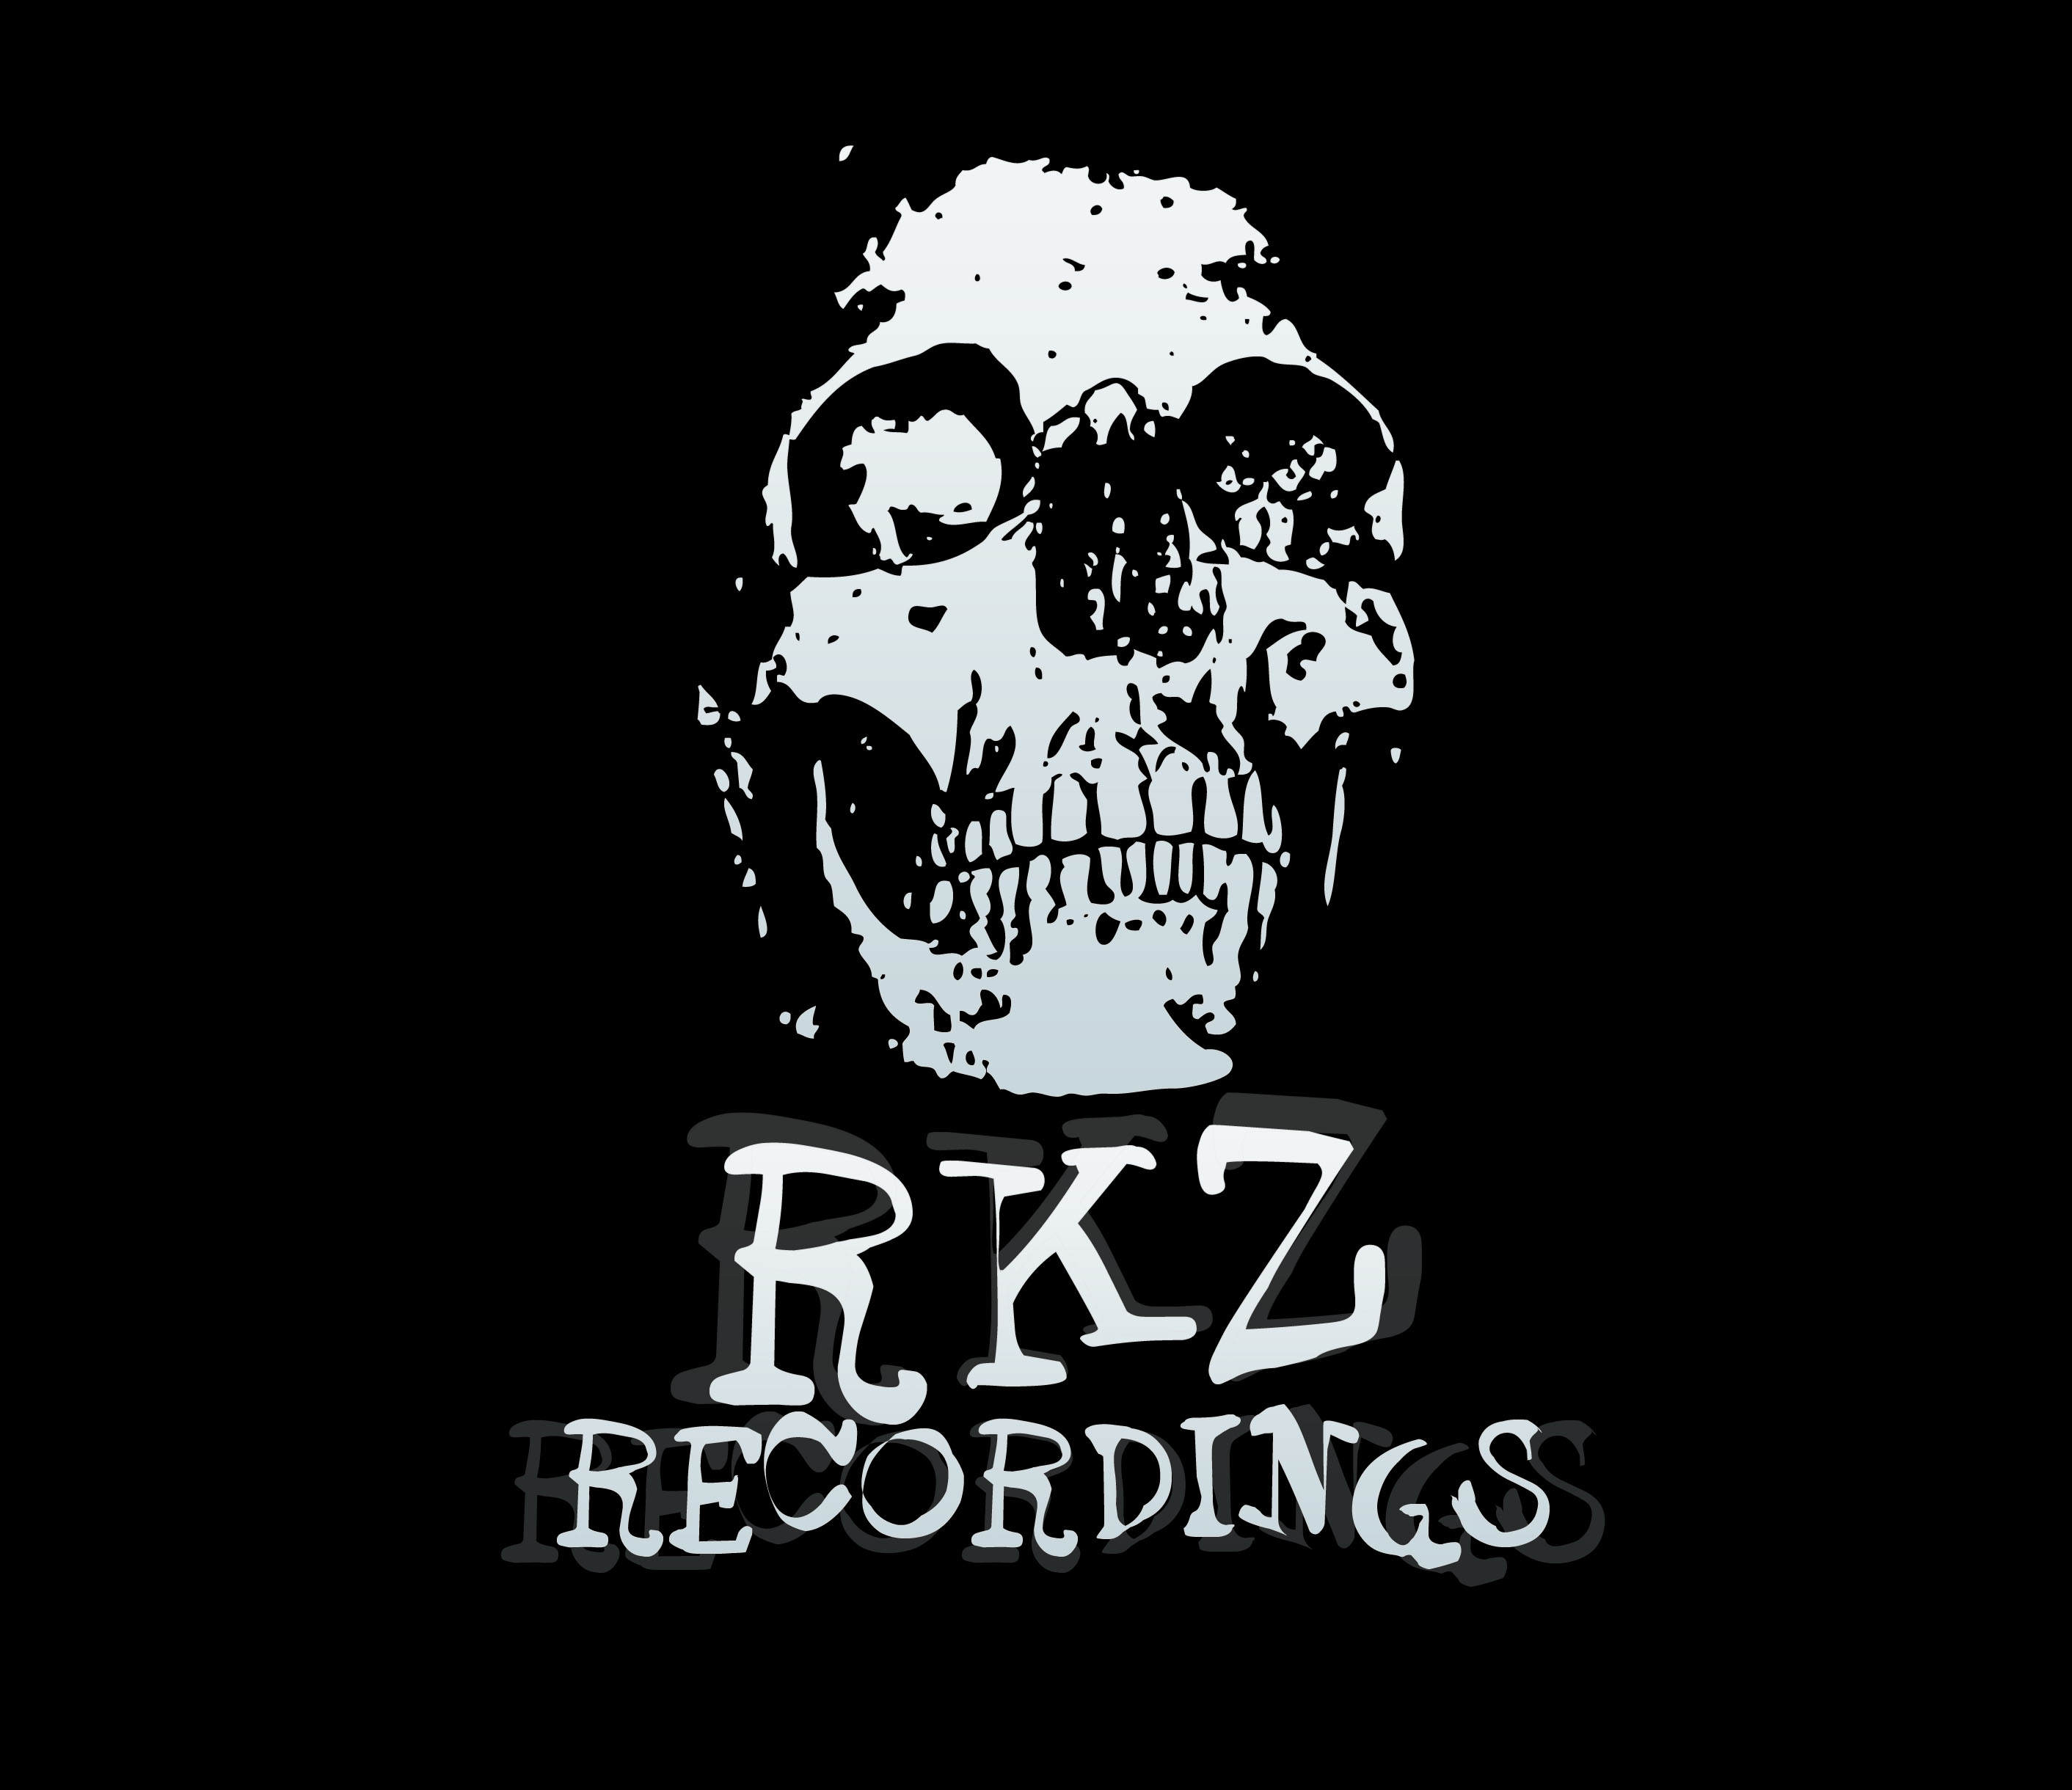 Radiokillaz Recordings Merchandise